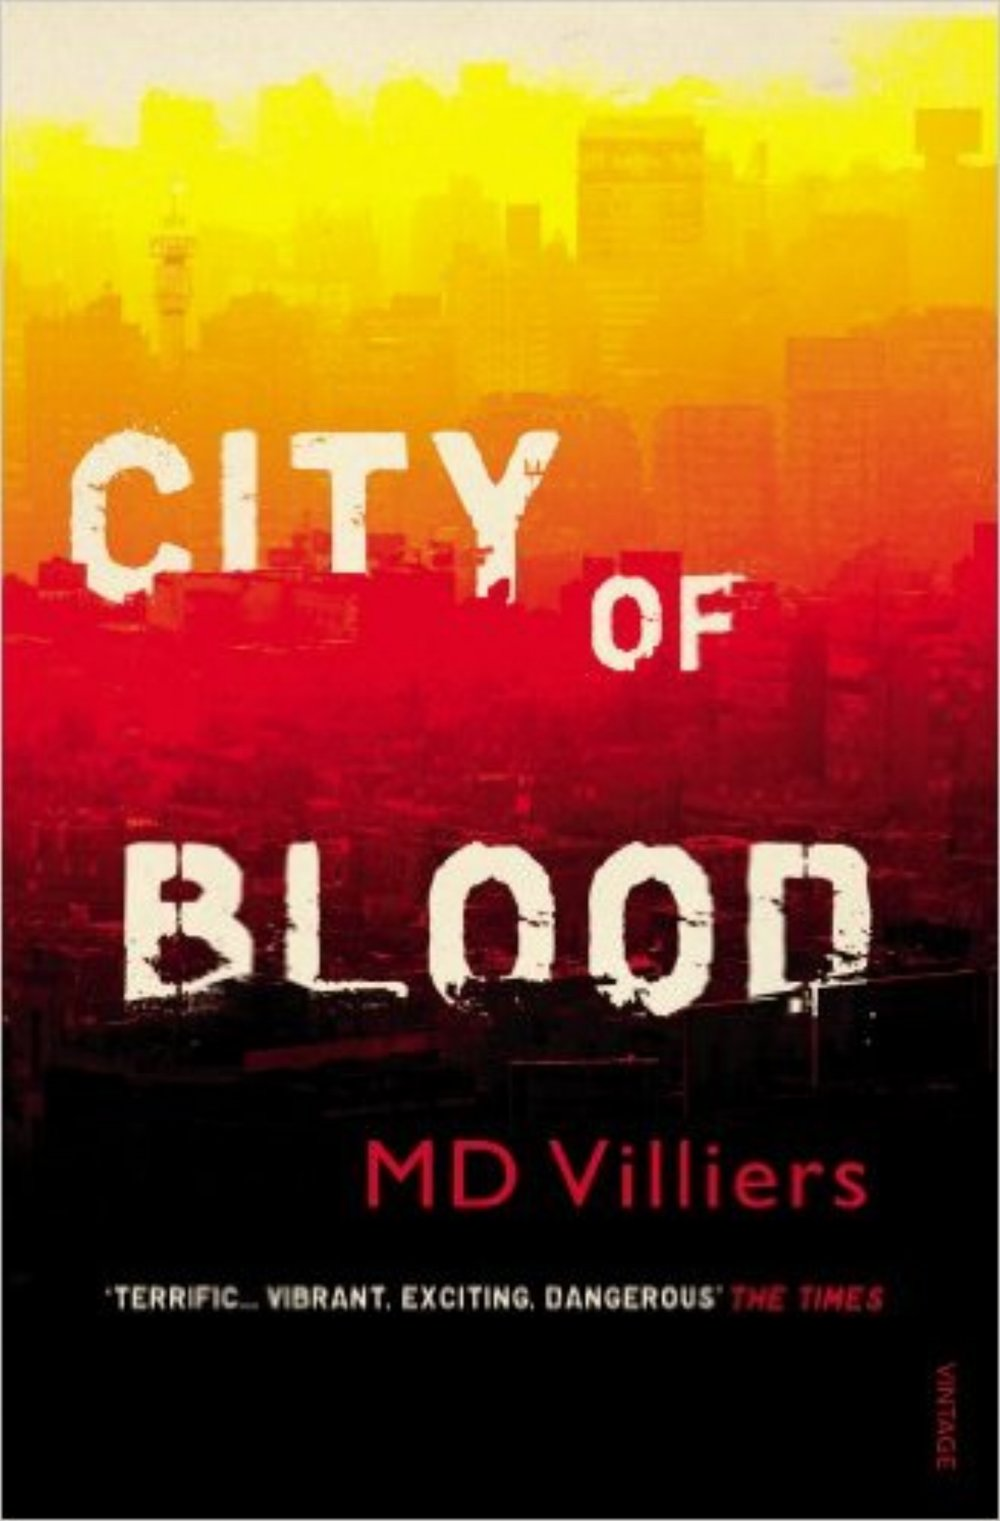 city-of-blood-md-villiers